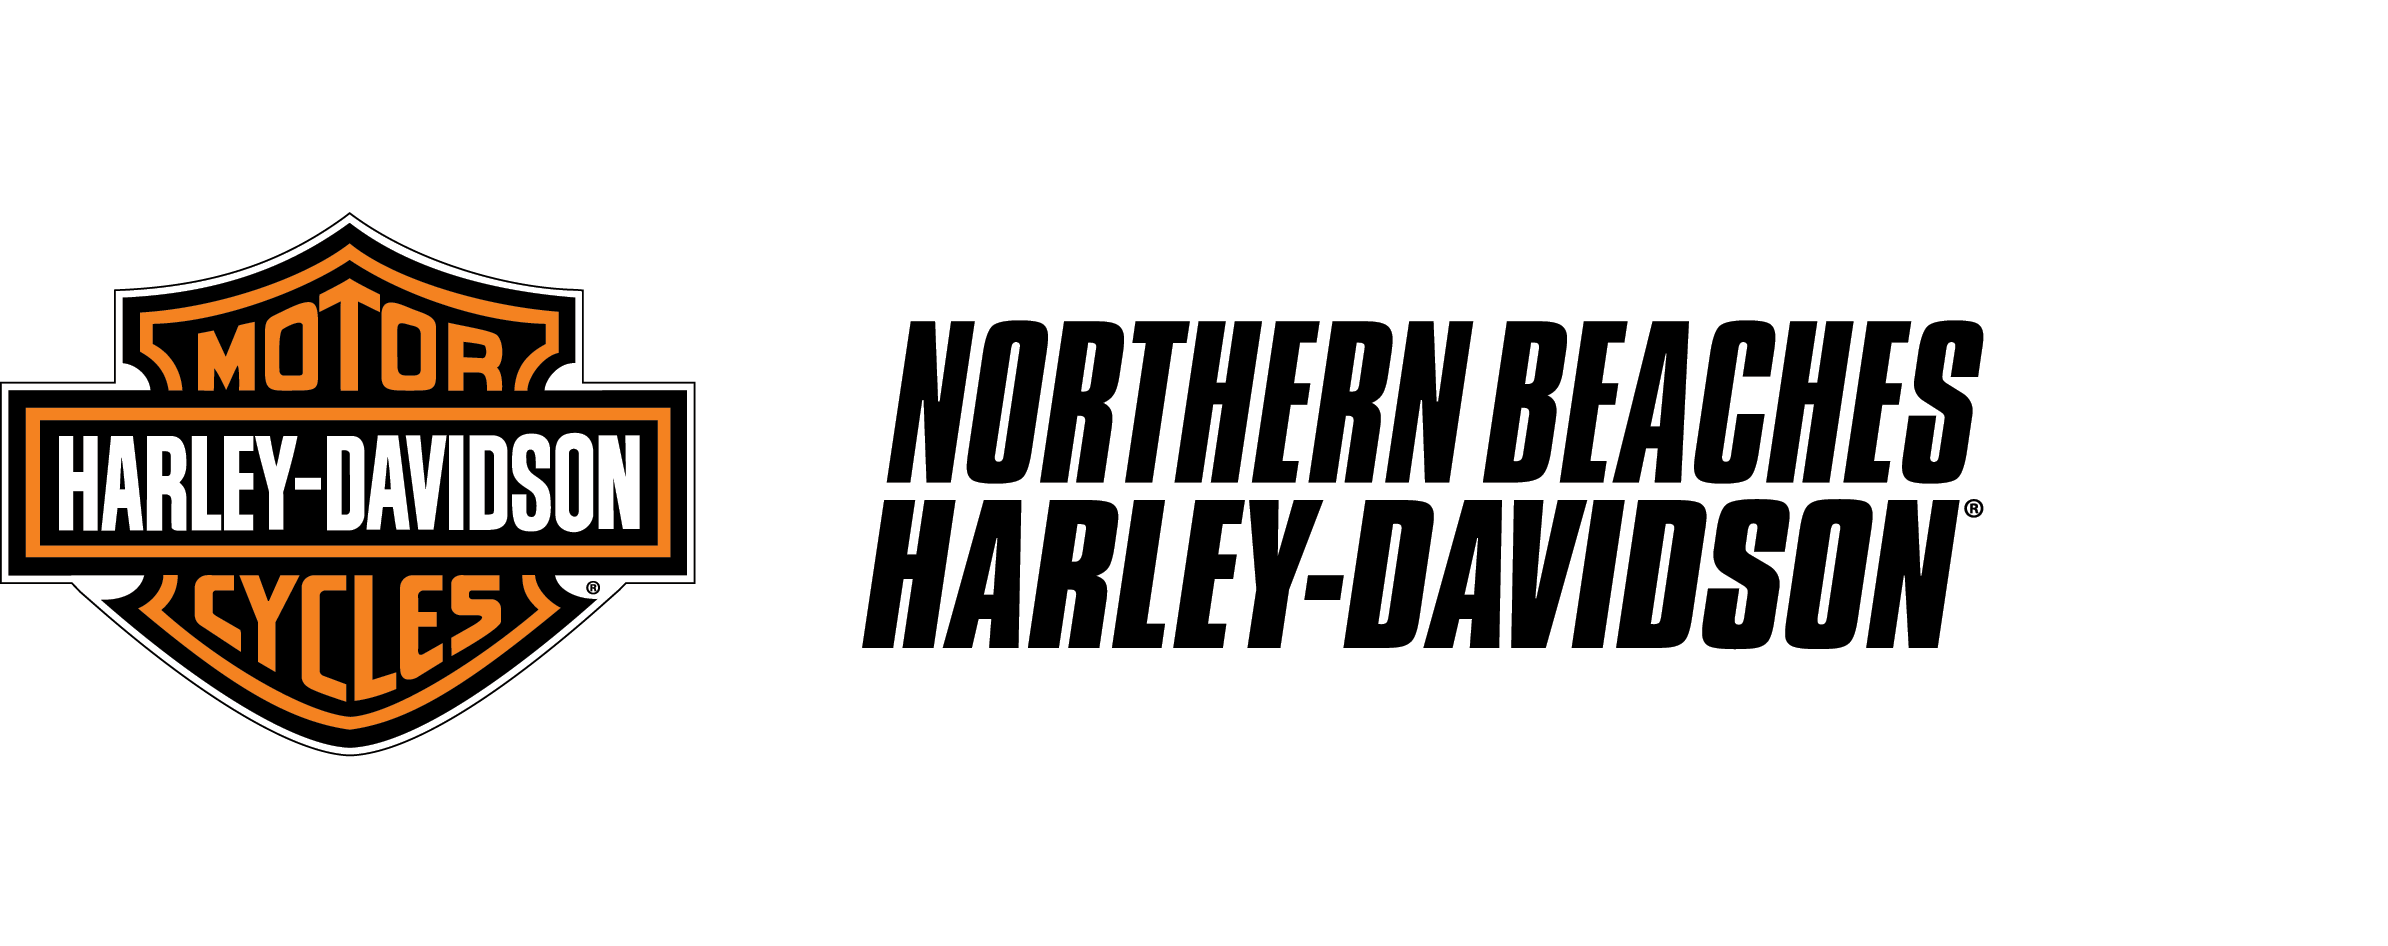 Northern Beaches Harley-Davidson® logo